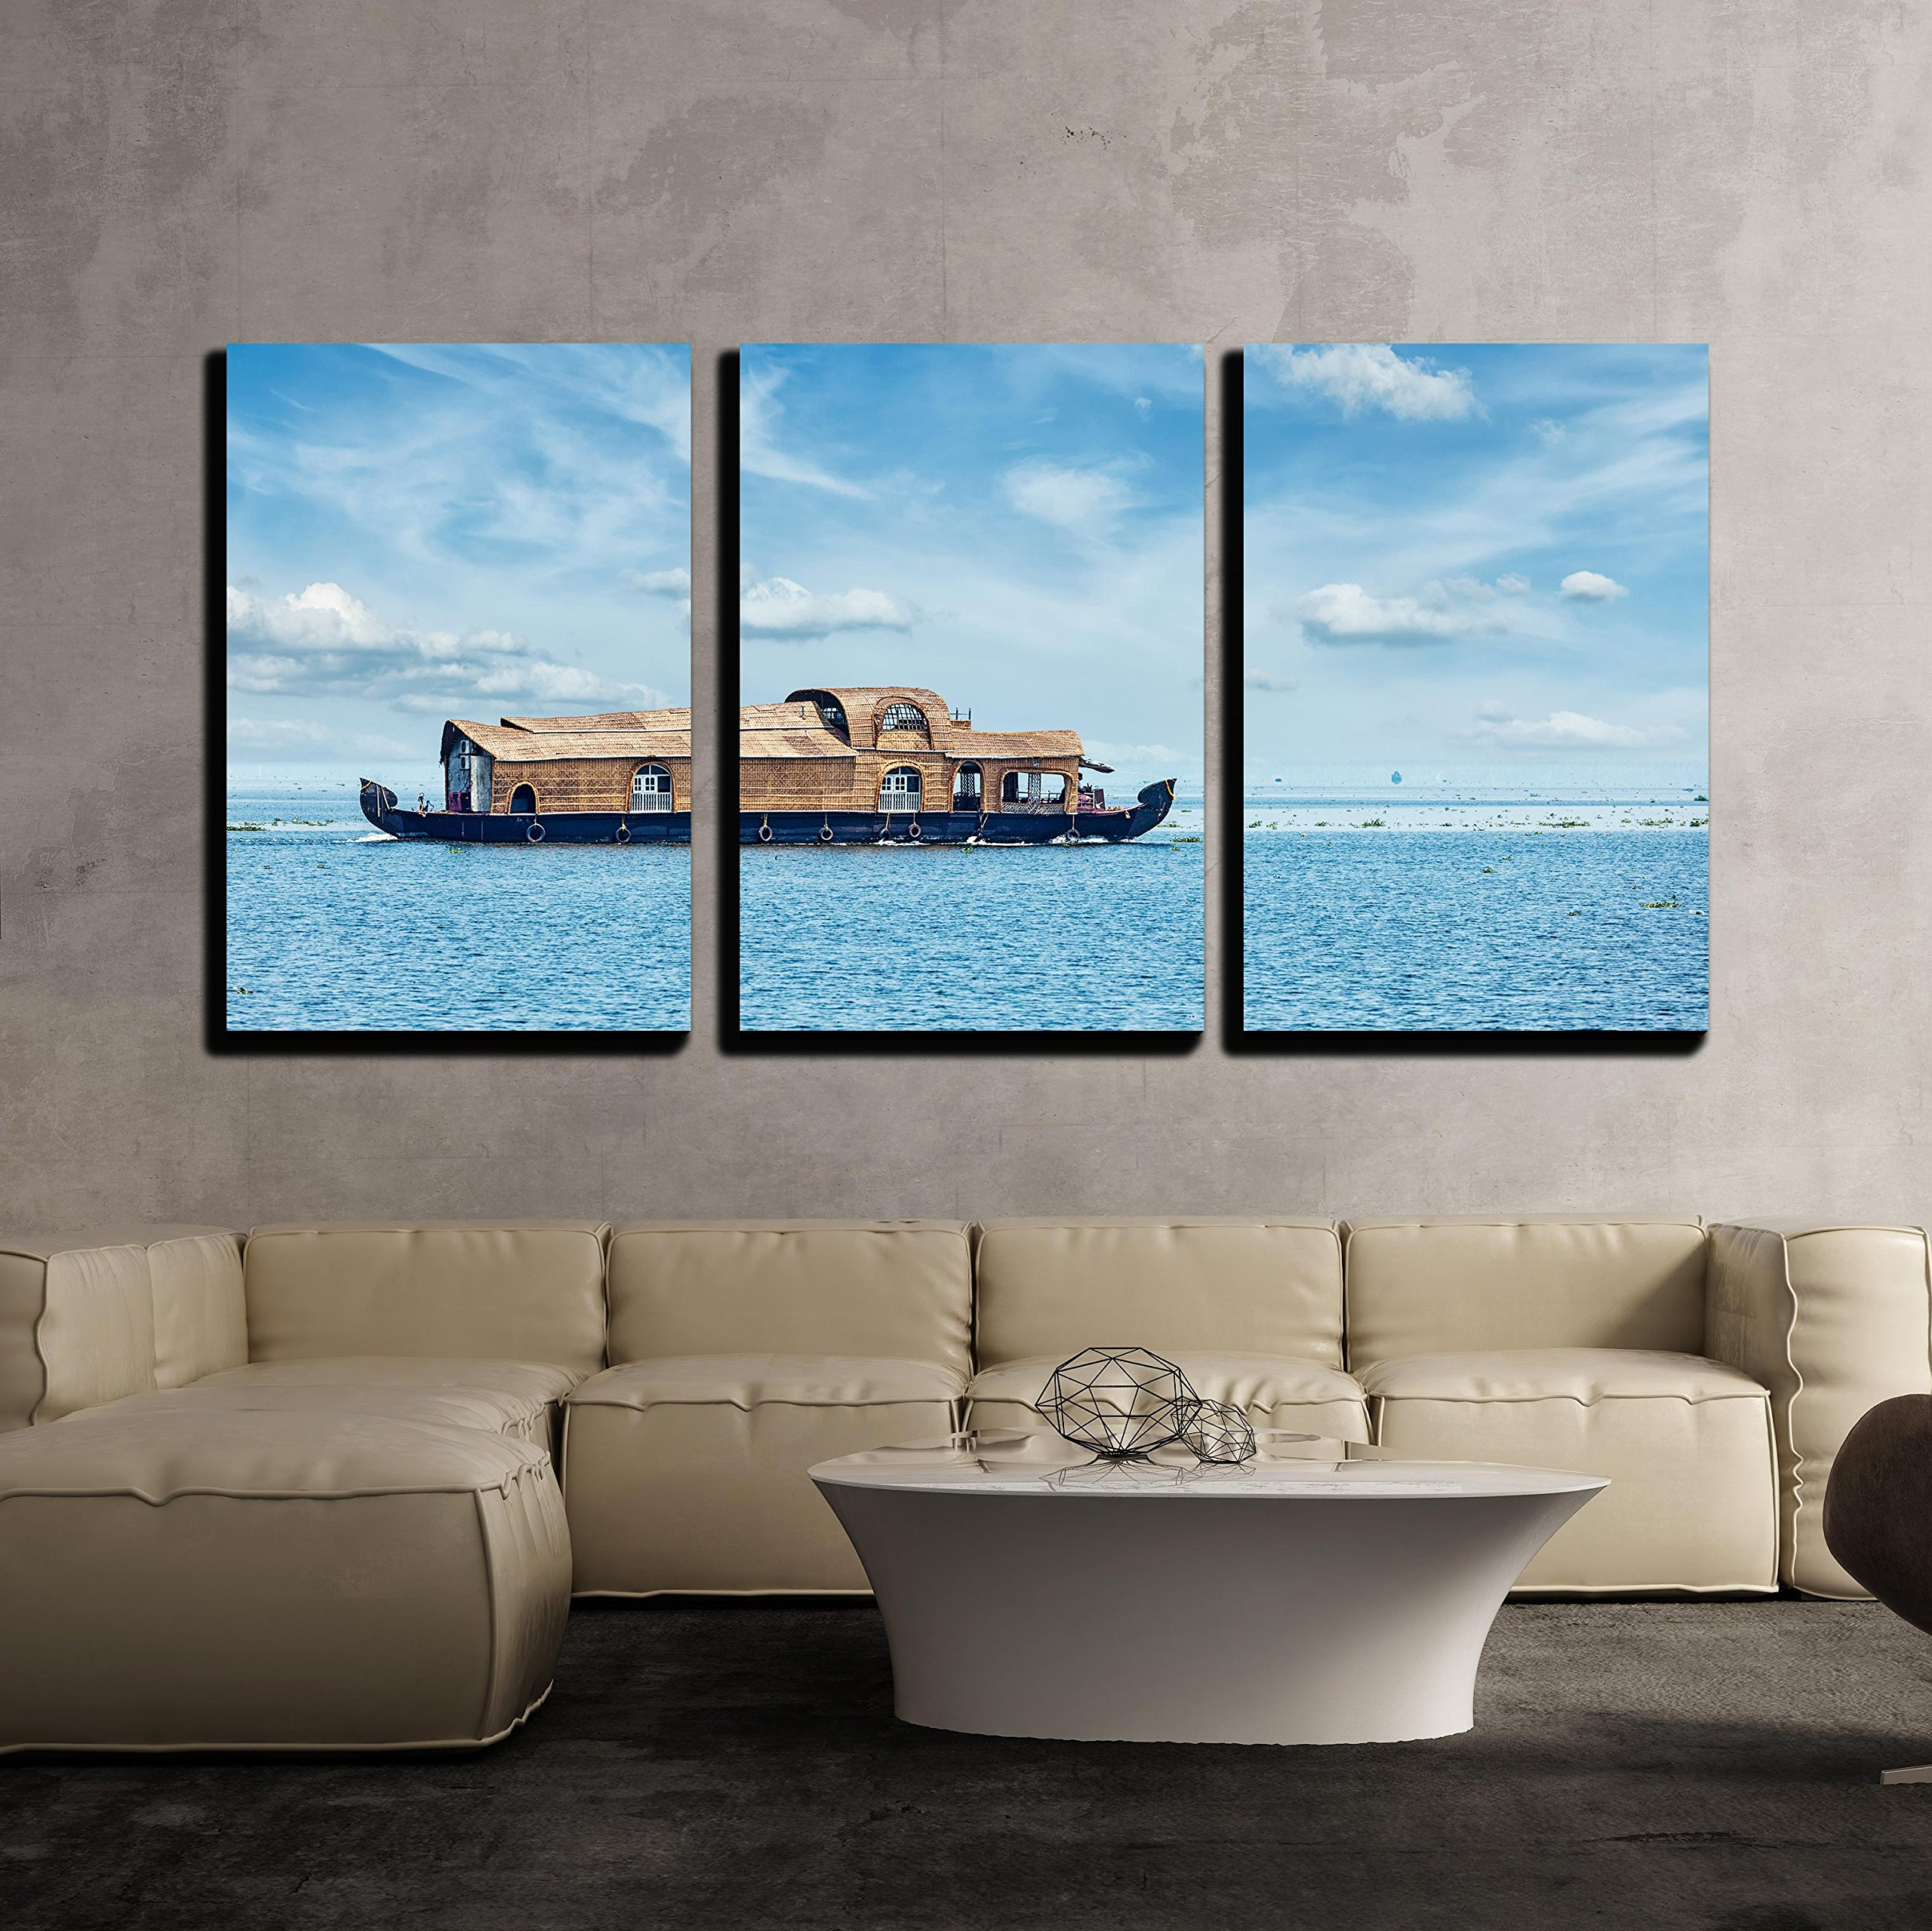 wall26 - 3 Piece Canvas Wall Art - Tourist Houseboat in Vembanadu Lake, Kerala, India - Modern Home Decor Stretched and Framed Ready to Hang - 24''x36''x3 Panels